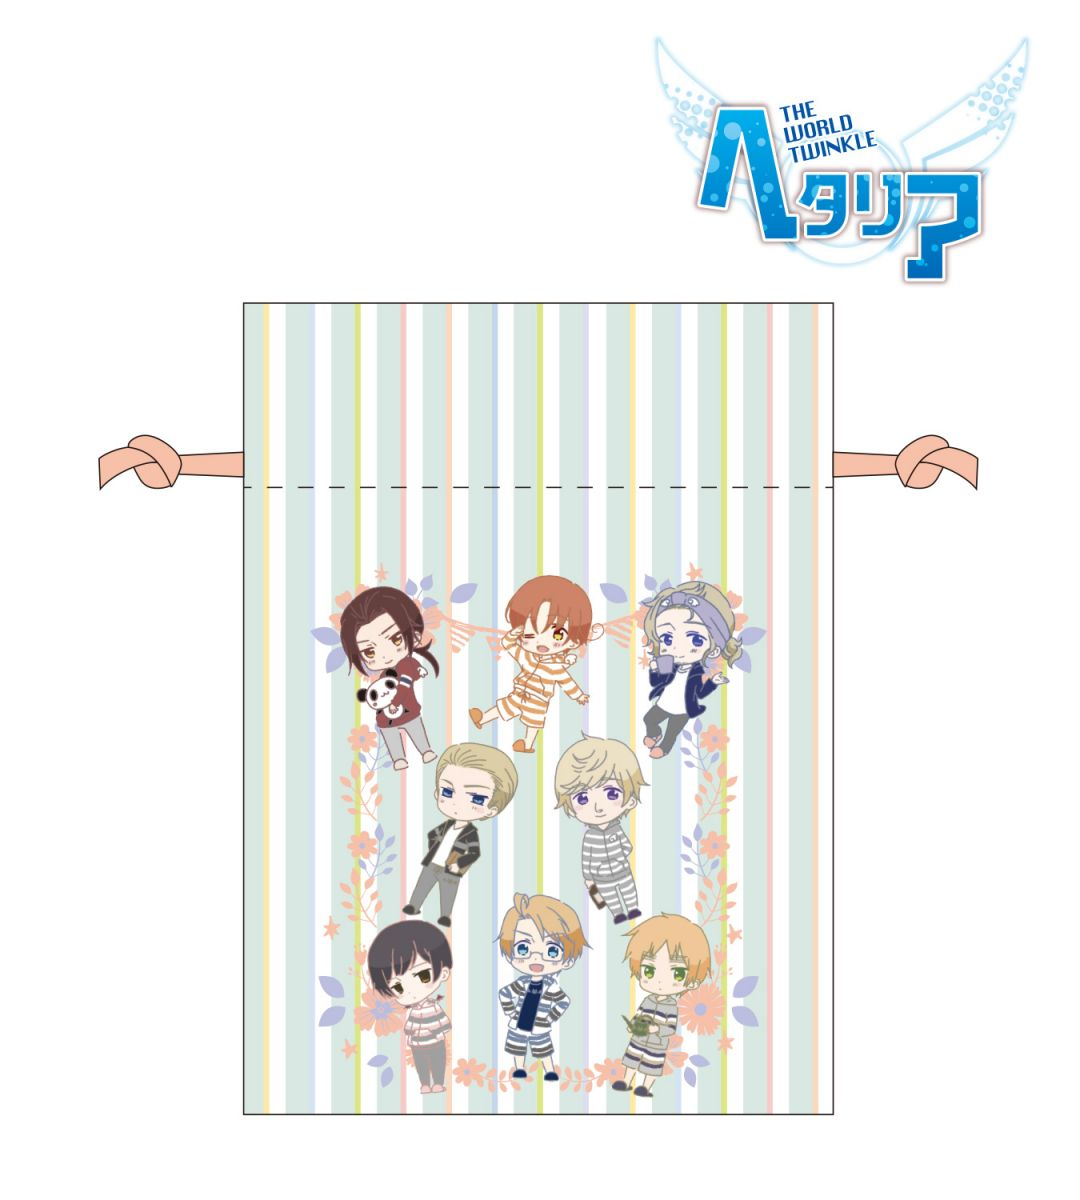 Bag | Anime Hetalia - The World Twinkle | Anime Merchandise Monday (5-12 August) by MANGA.TOKYO ©2015 日丸屋秀和・幻冬舎コミックス/ヘタリア製作委員会